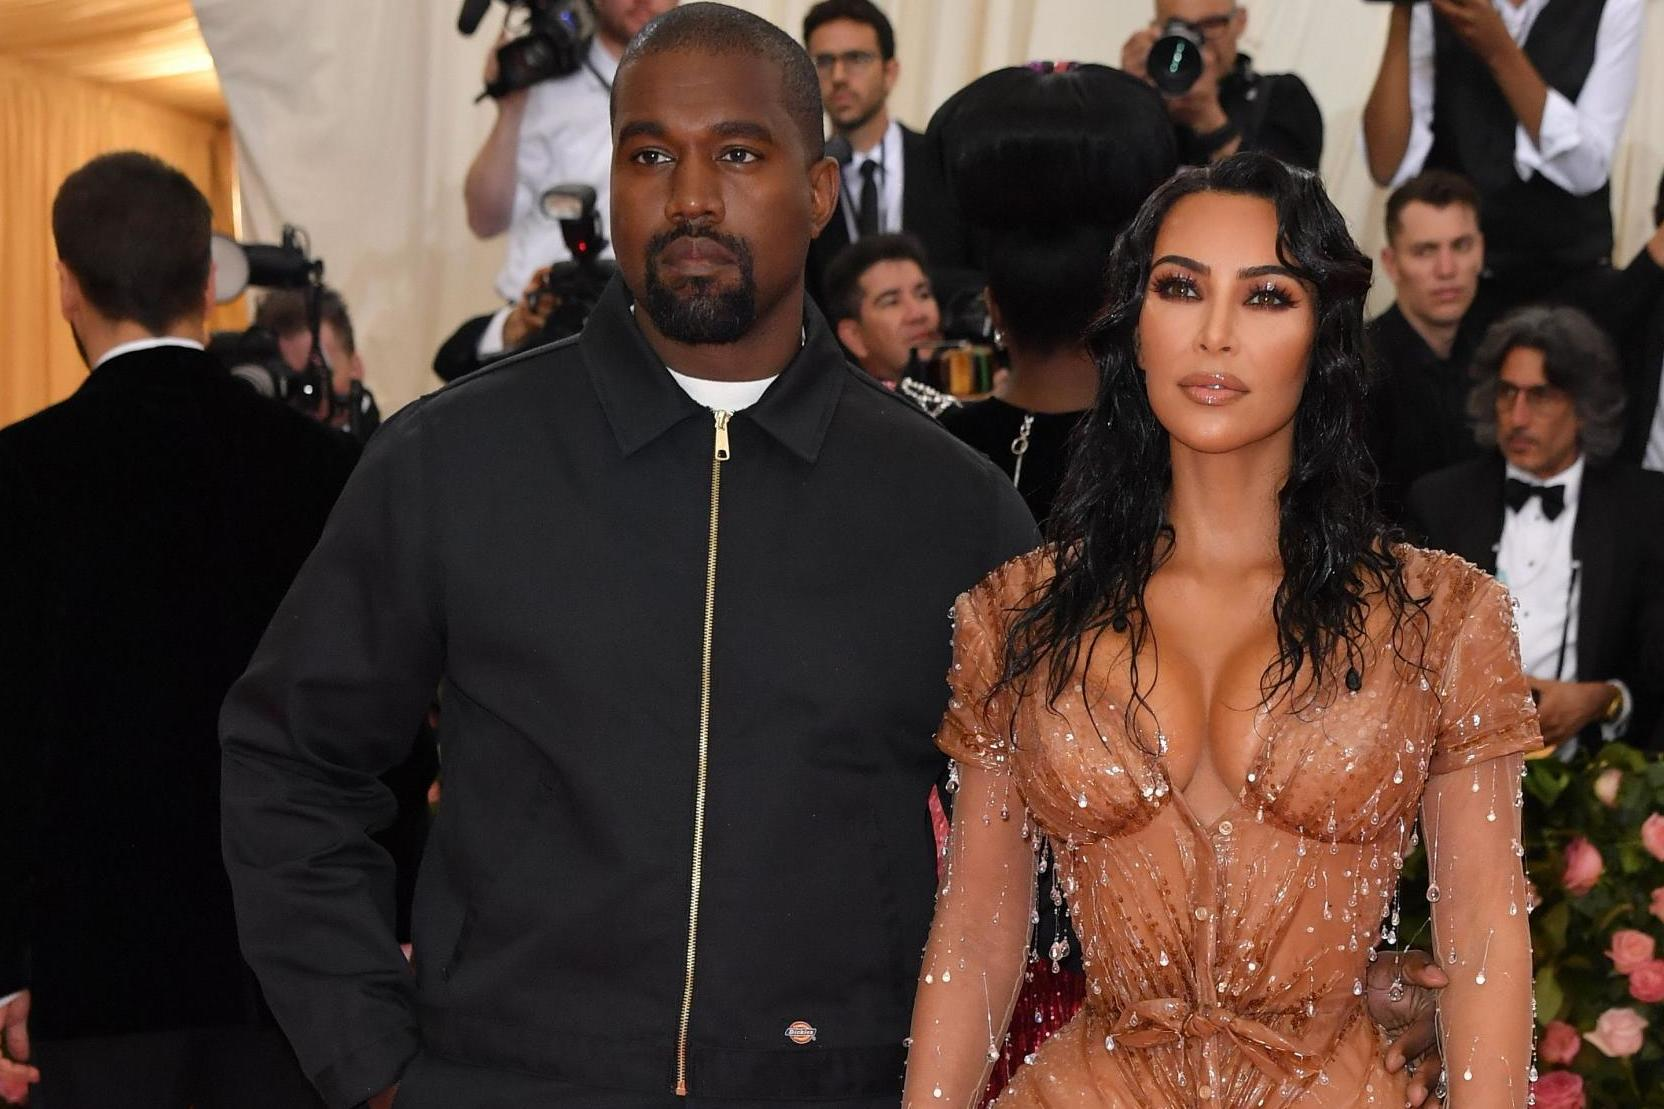 761fdd6ac9091 Kanye West wore a £33 jacket to the Met Gala that you can buy on ...